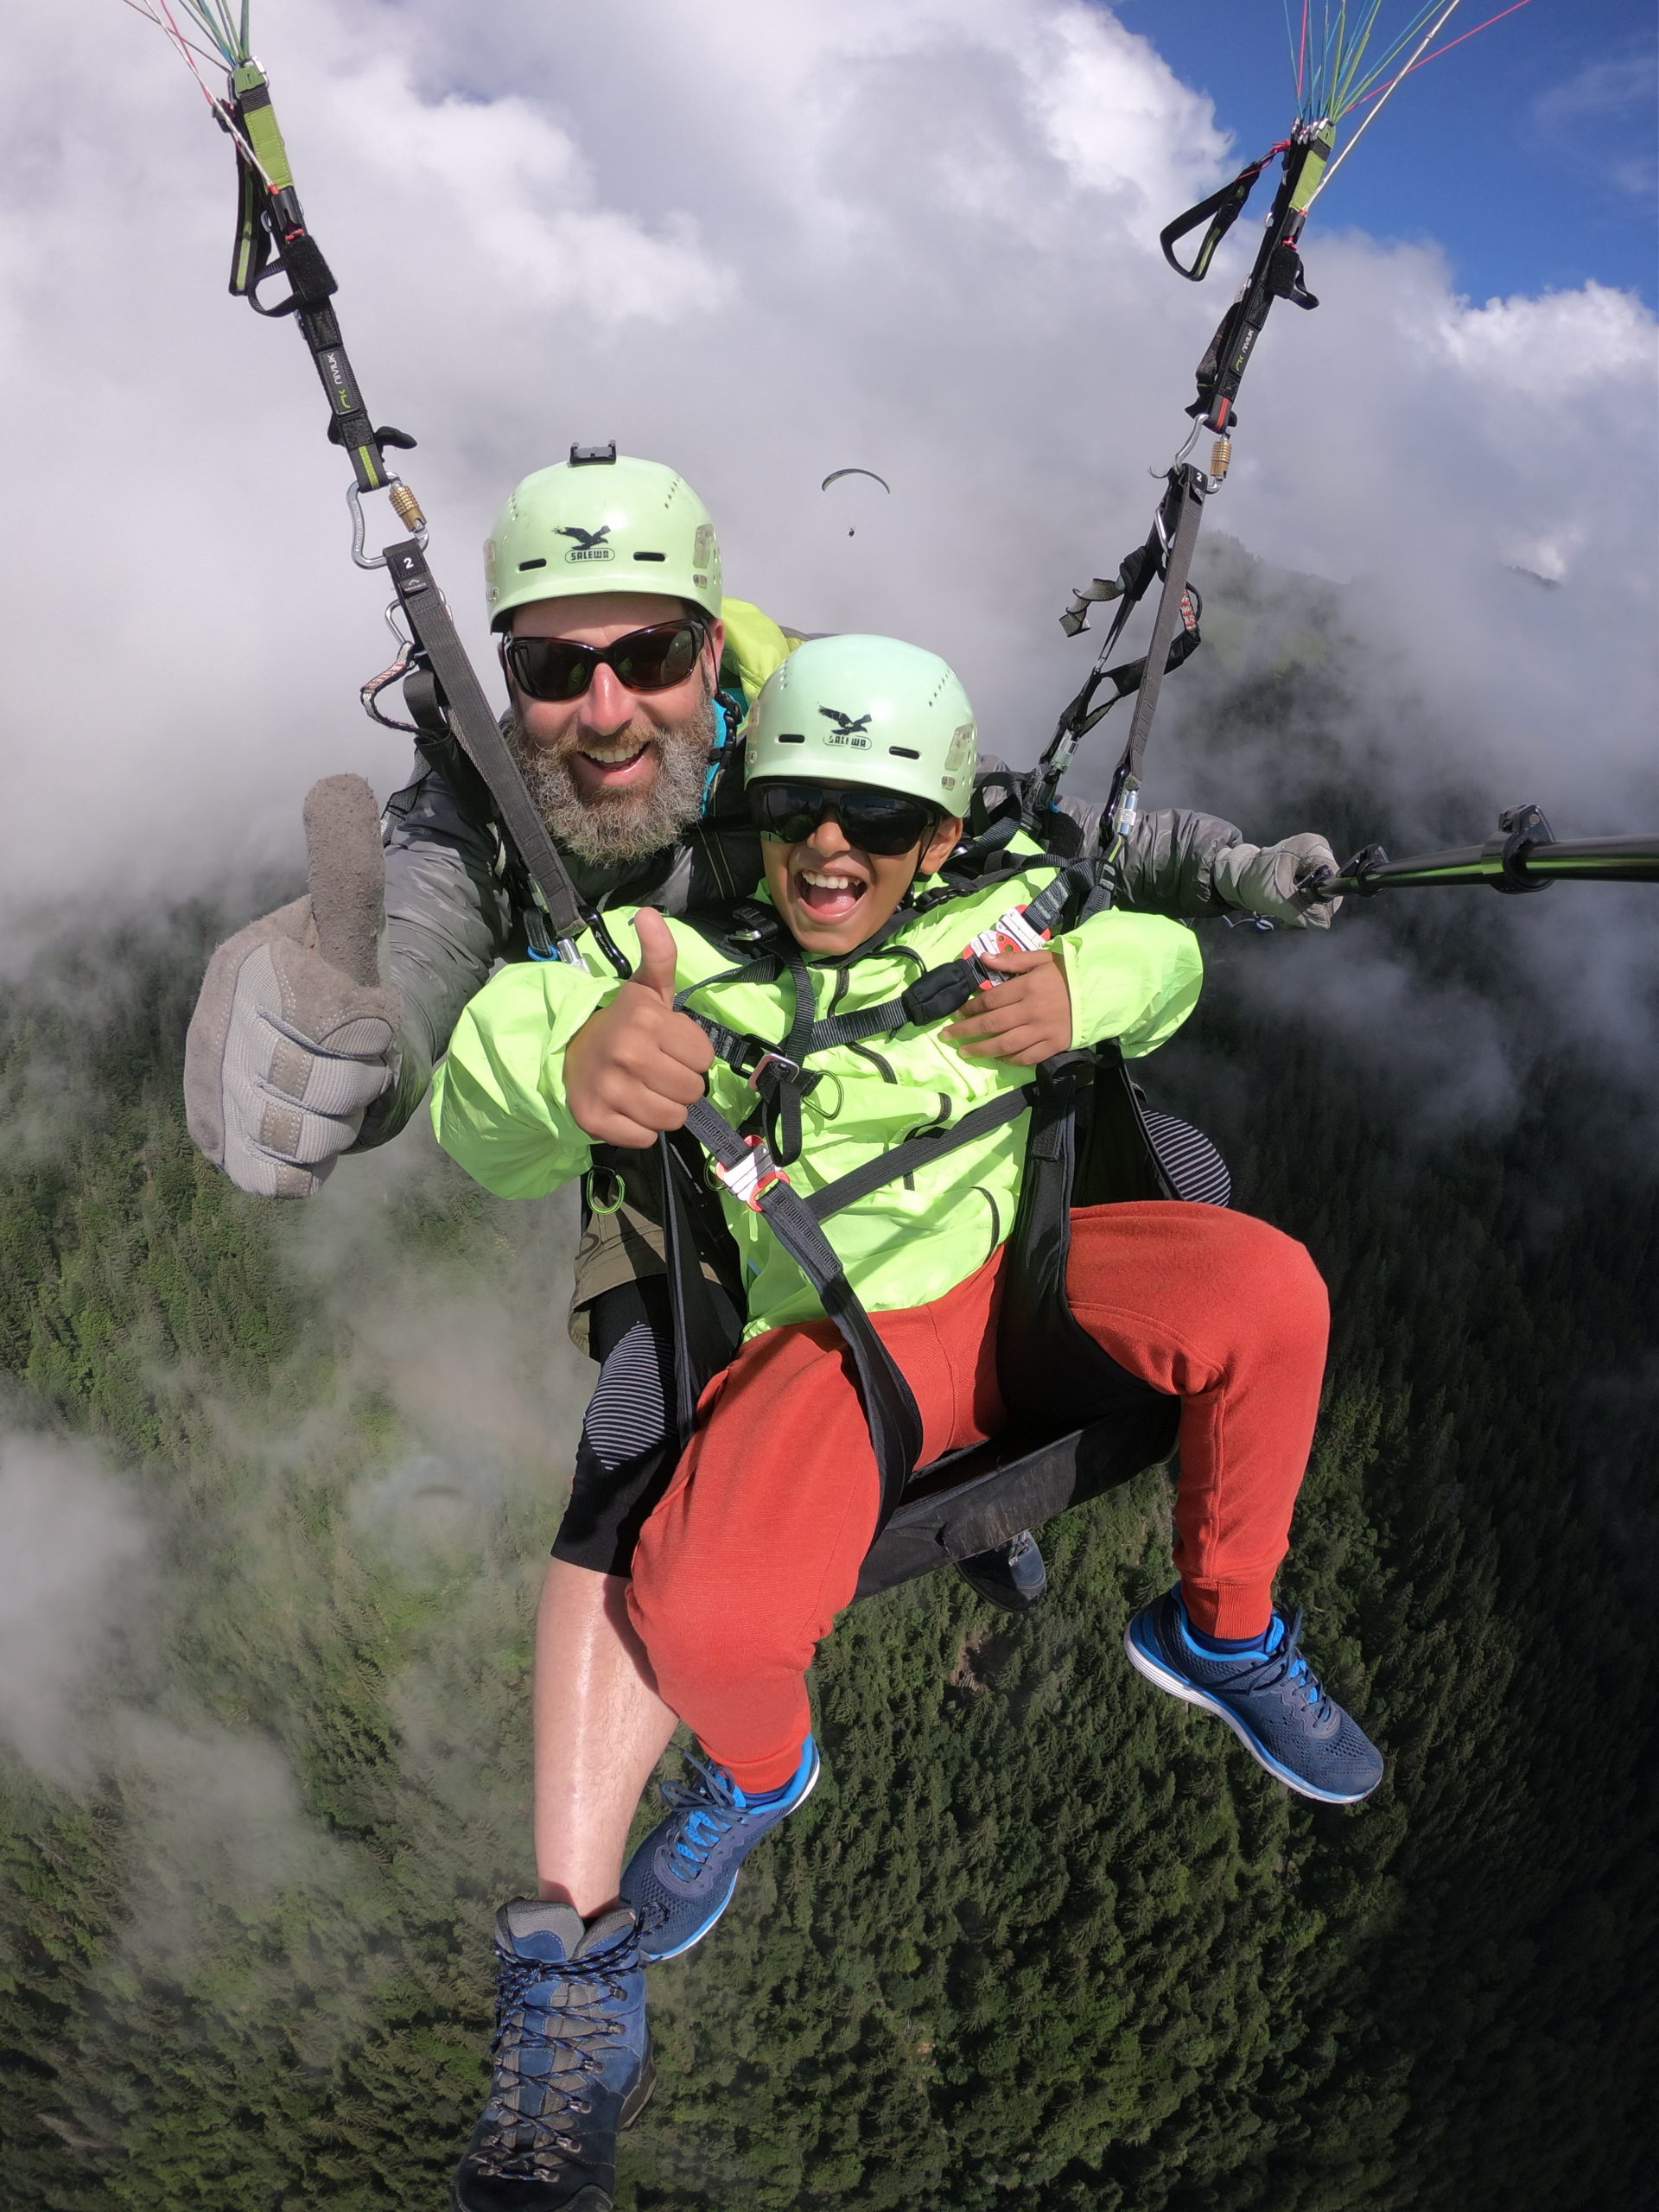 Paragliding with kids Interlaken big smiles thumbs up - Copy